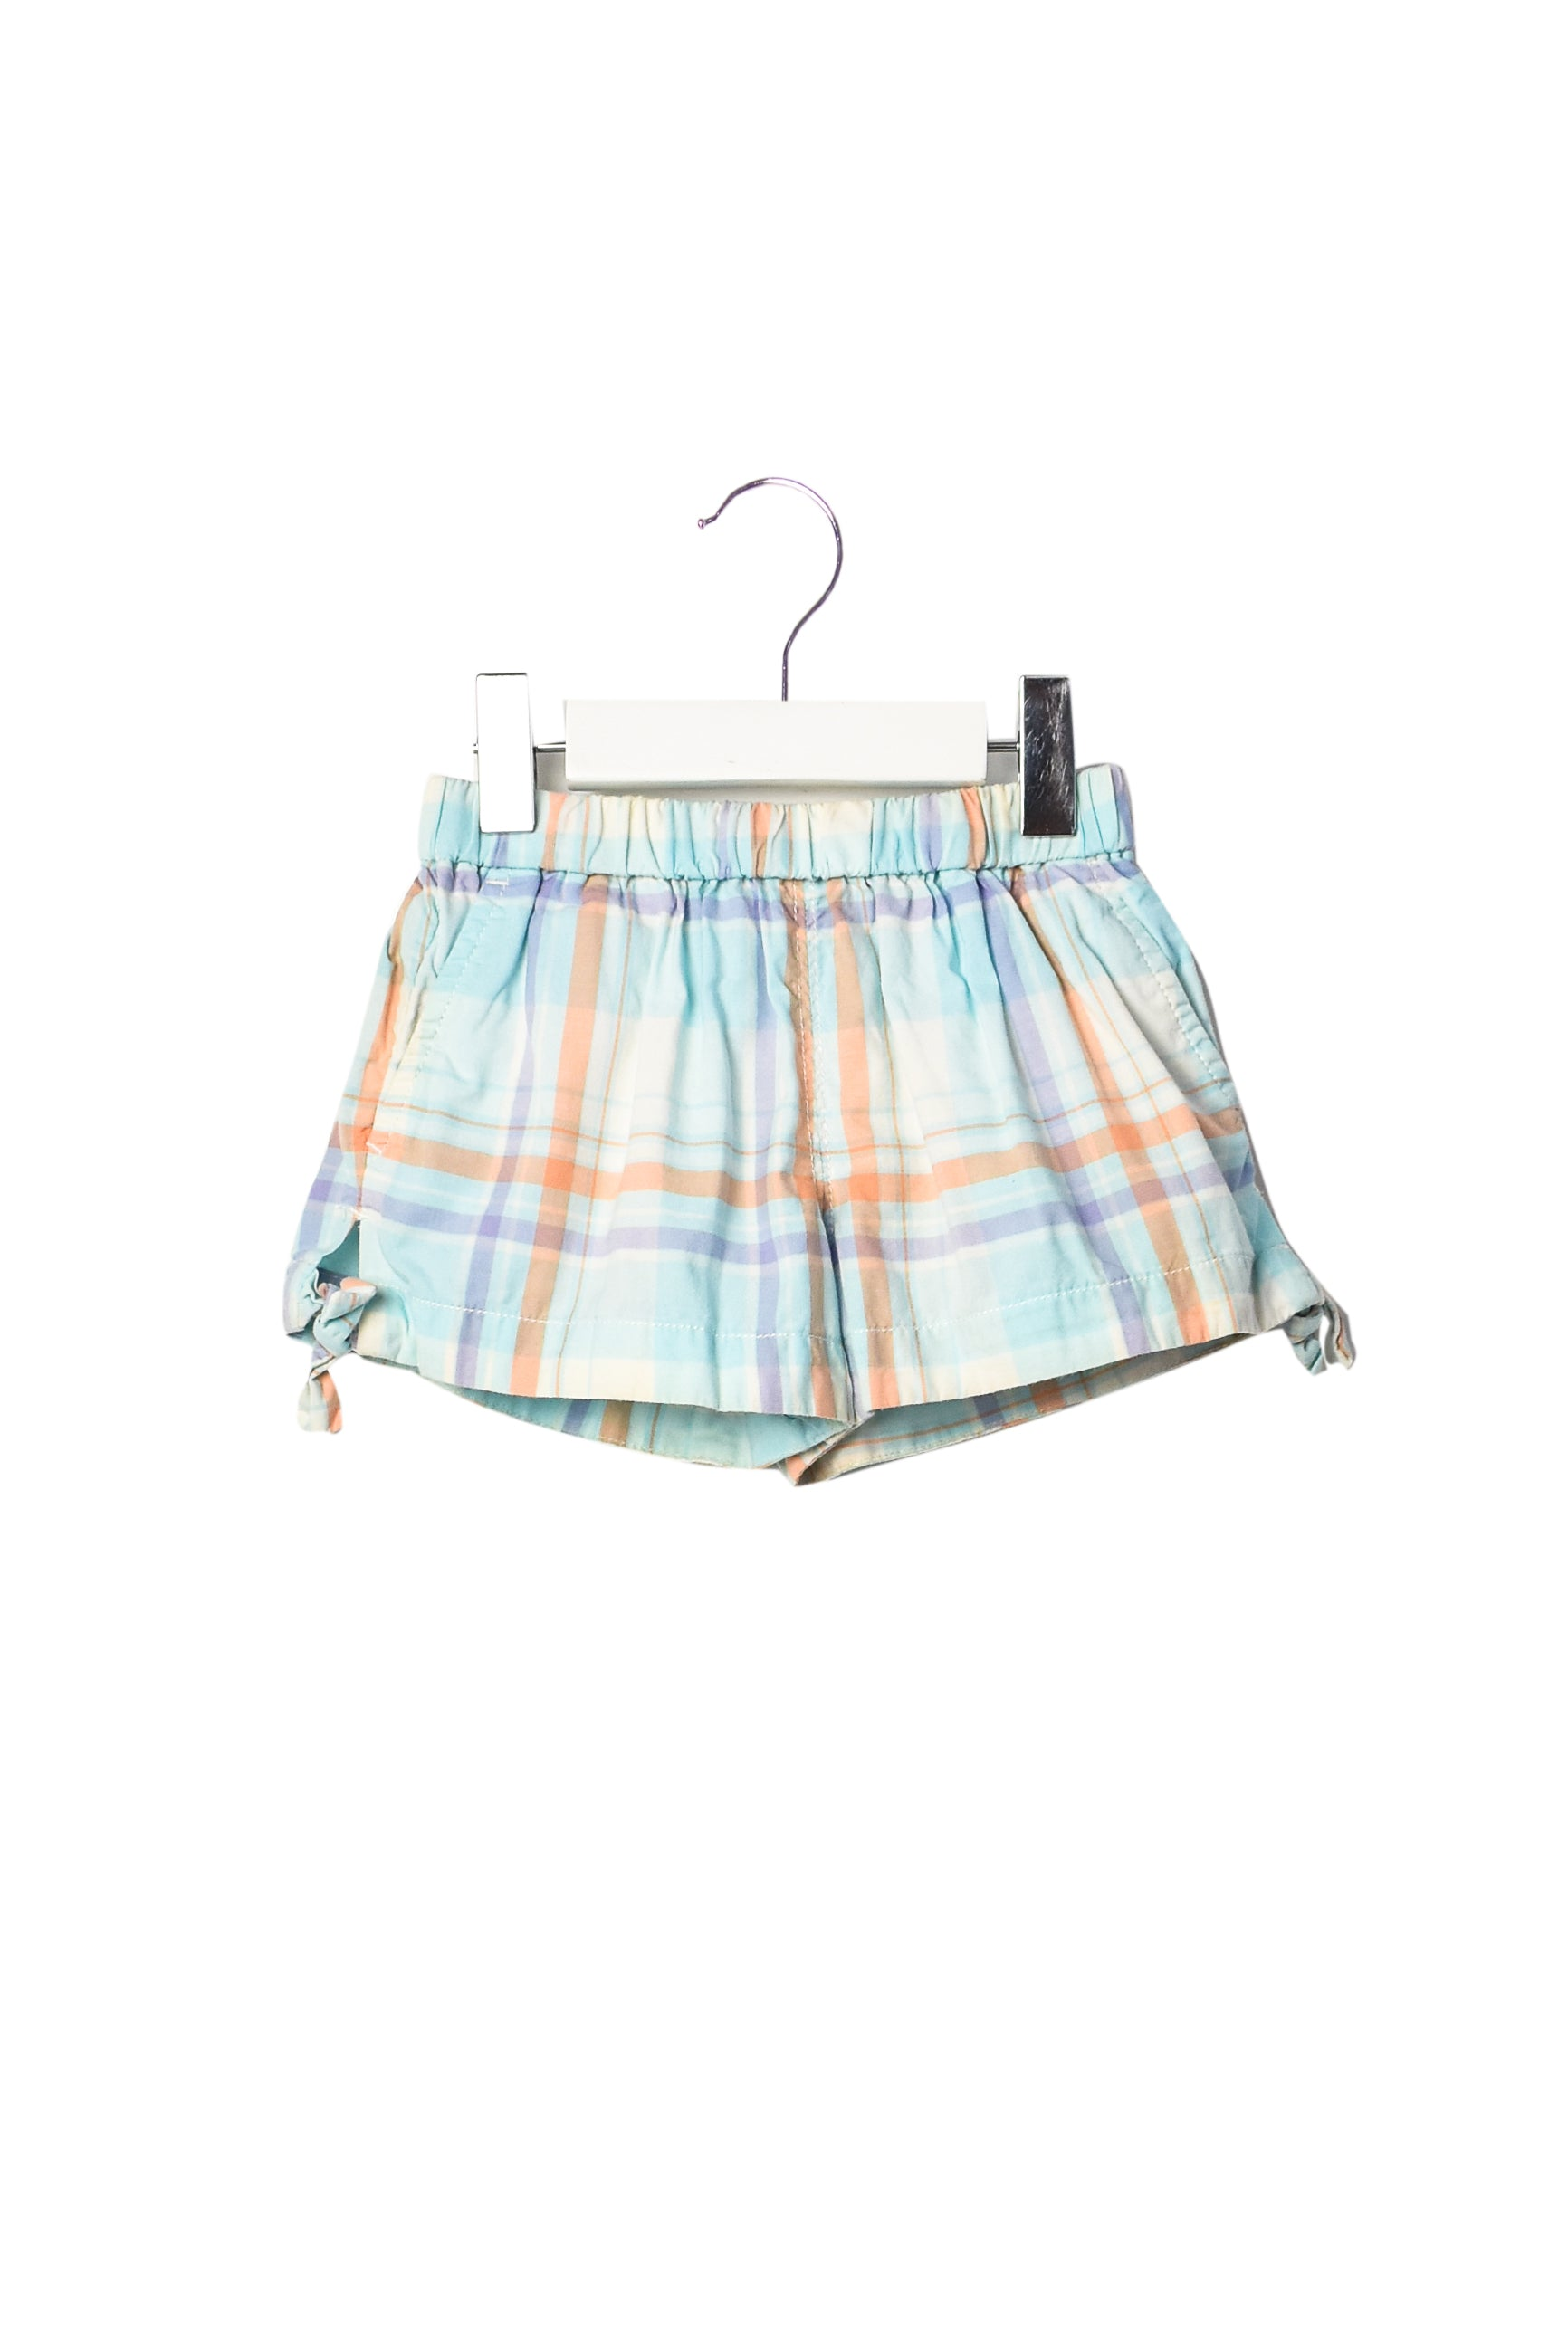 10006552 Crewcuts Kids~Shorts 3T at Retykle